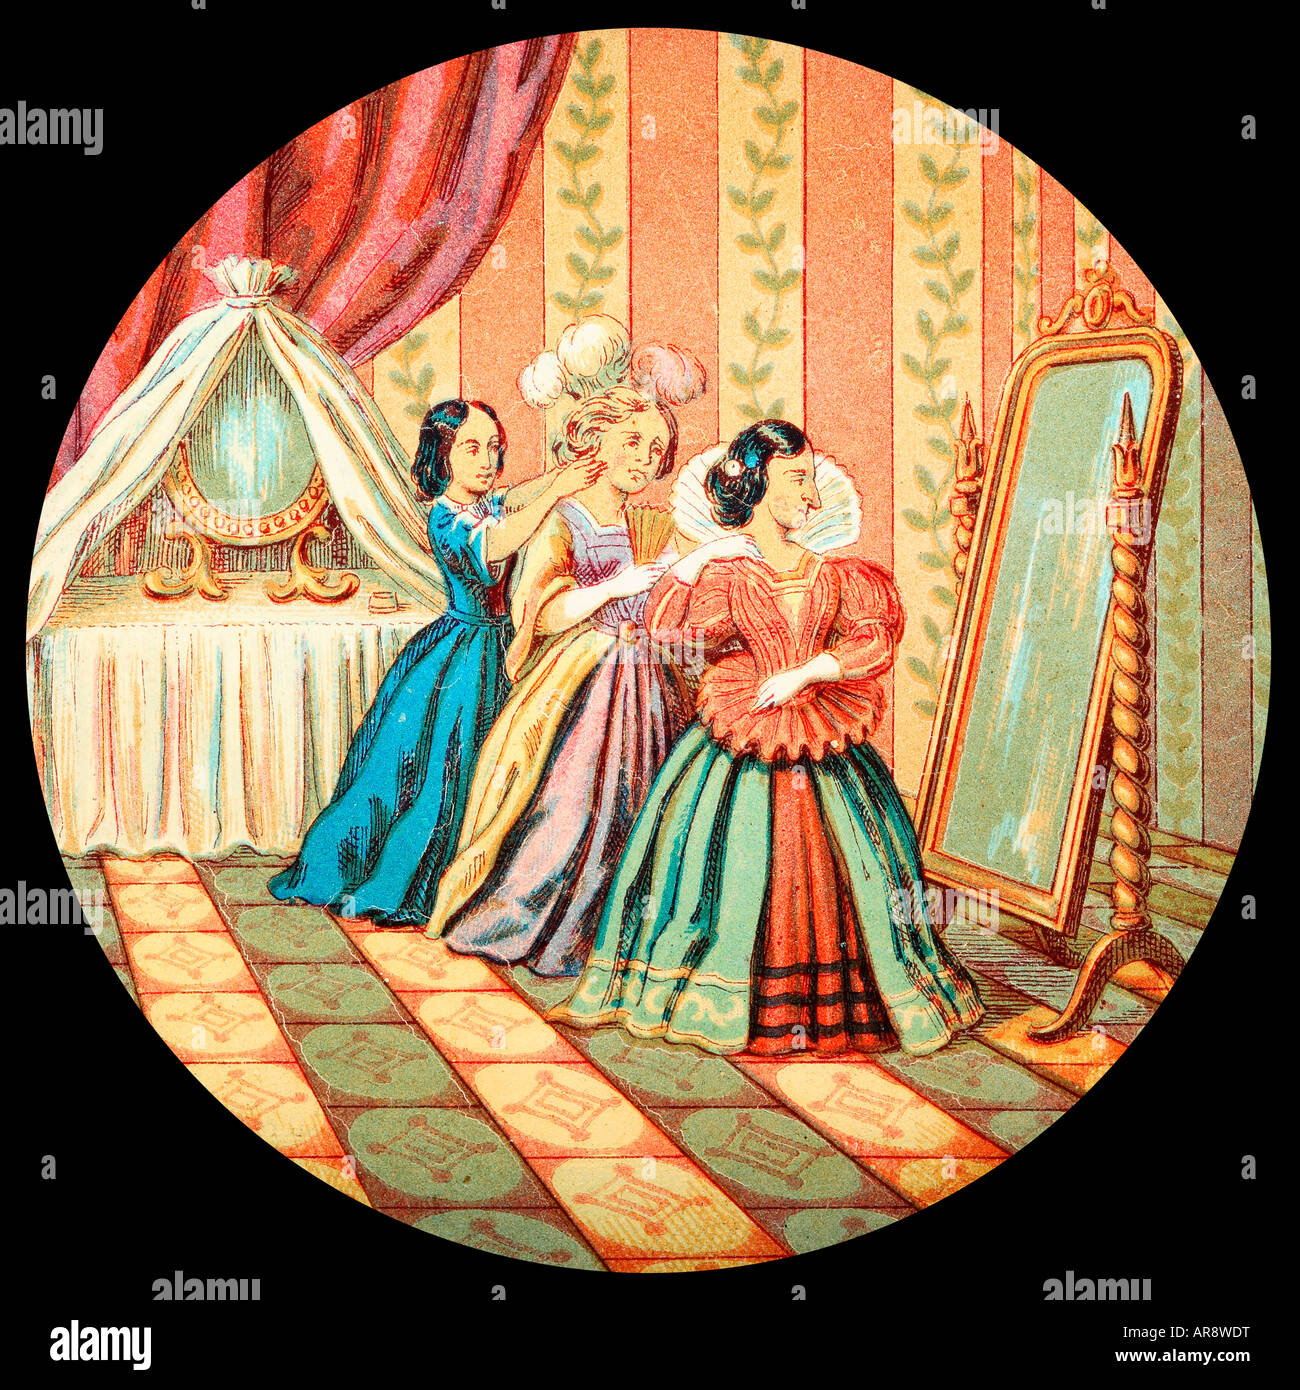 Old Glass Lantern Slide of Story of Cinderella. With the Ugly Sisters. - Stock Image